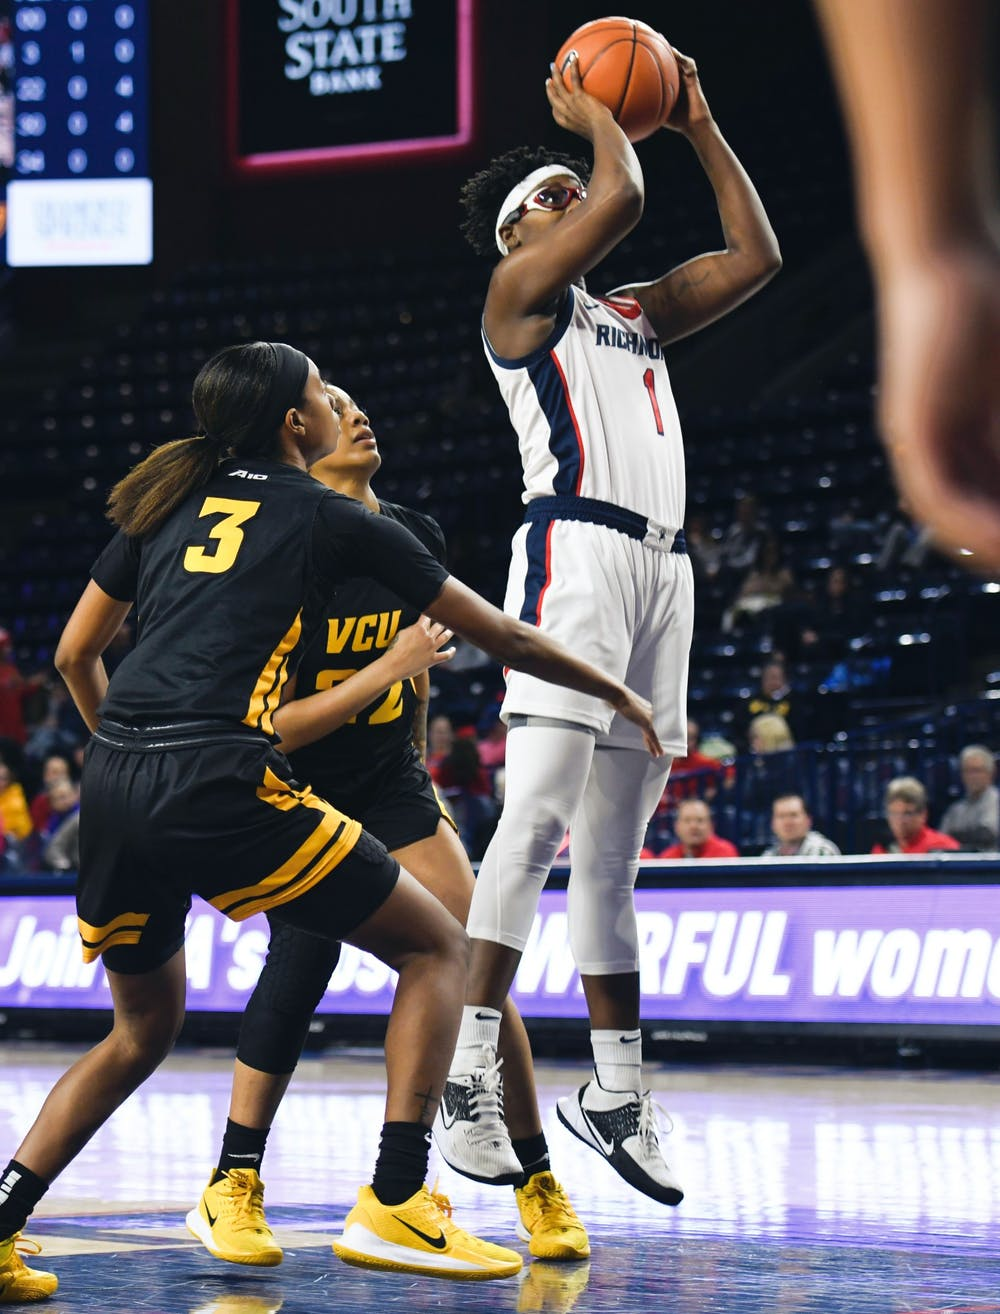 Senior forward Jaide Hinds-Clarke jumps past VCU defense during a game at Robins Stadium on Wednesday, February 5, 2020.